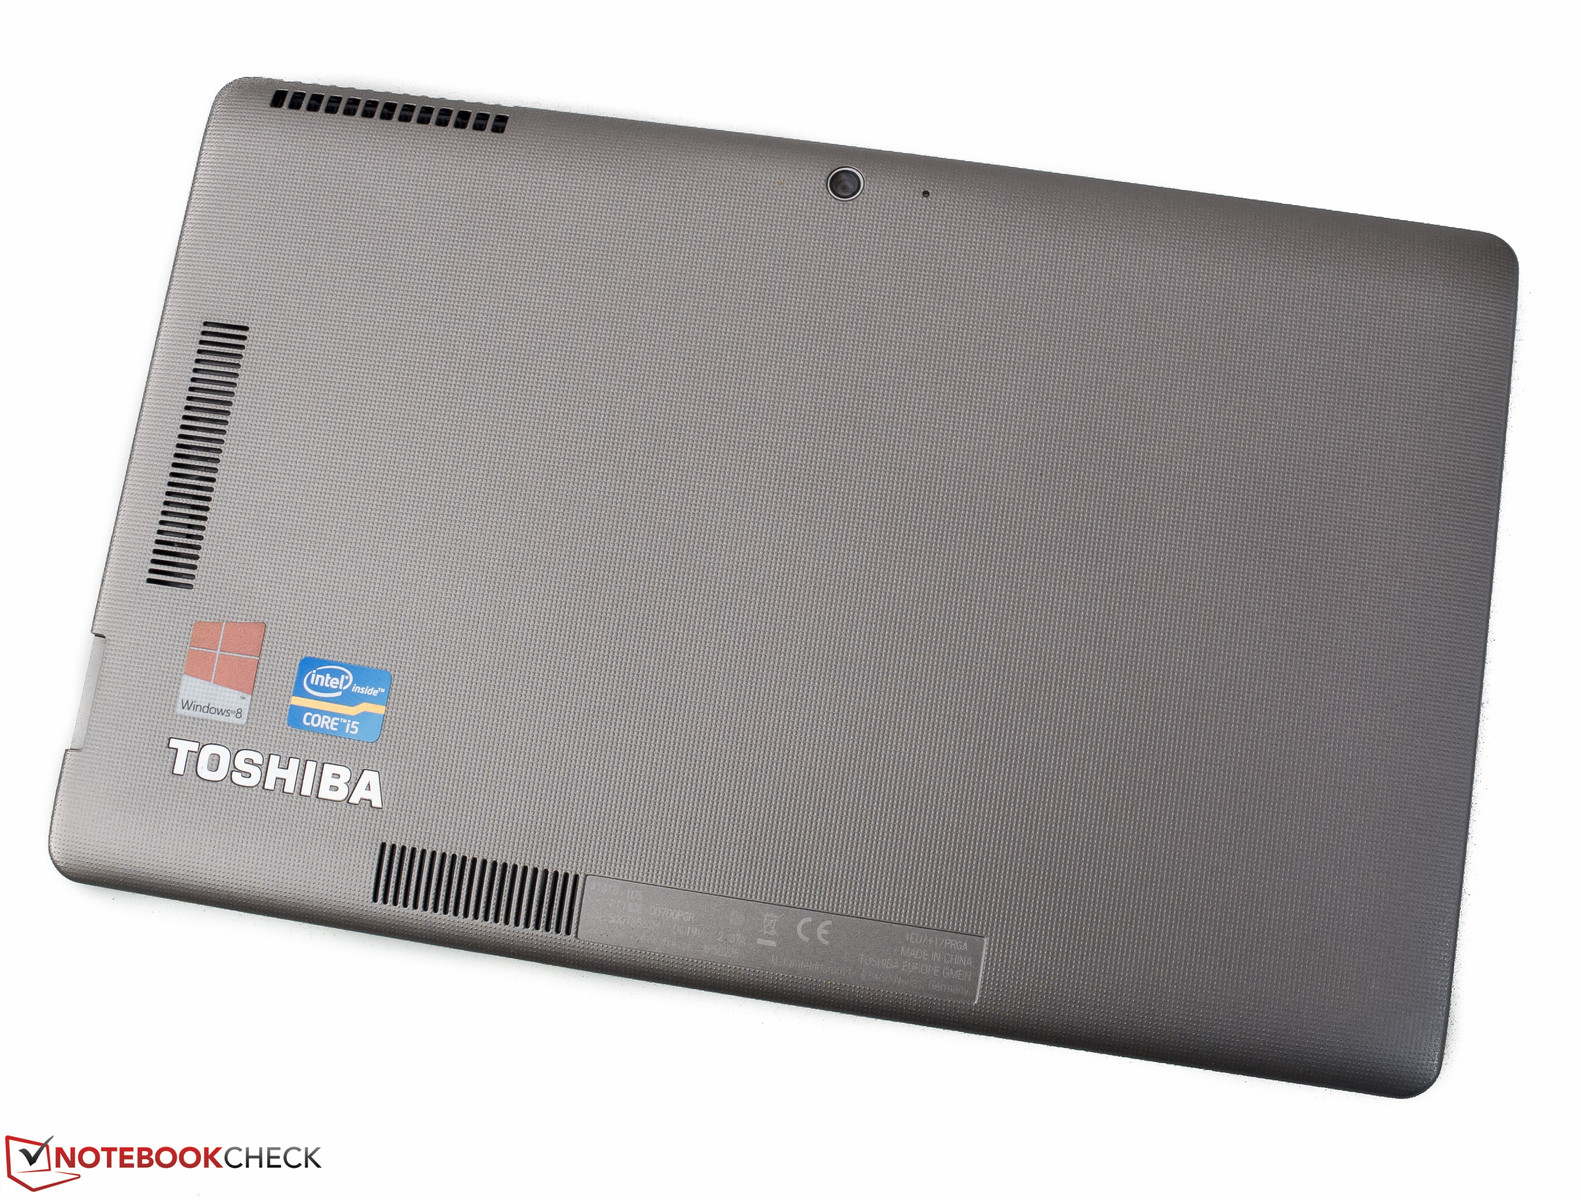 Review Toshiba WT310 Tablet